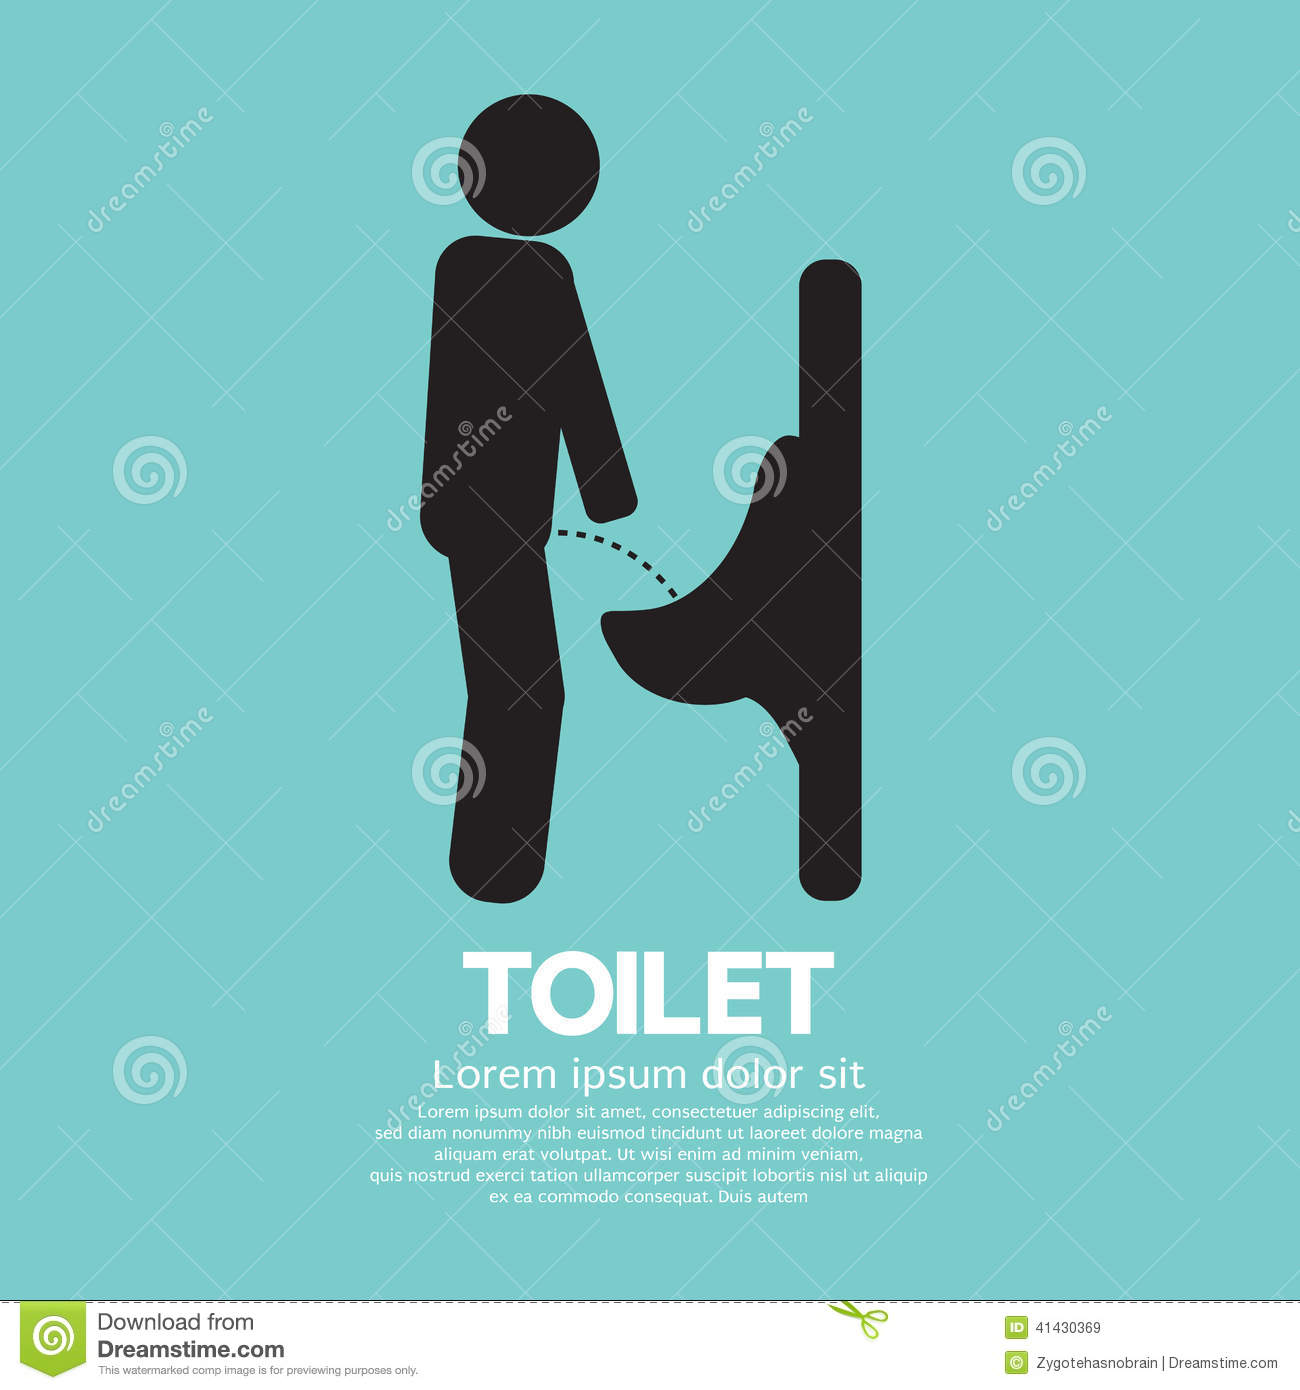 Bathroom Sign Male Vector men toilet sign stock vector - image: 41430369